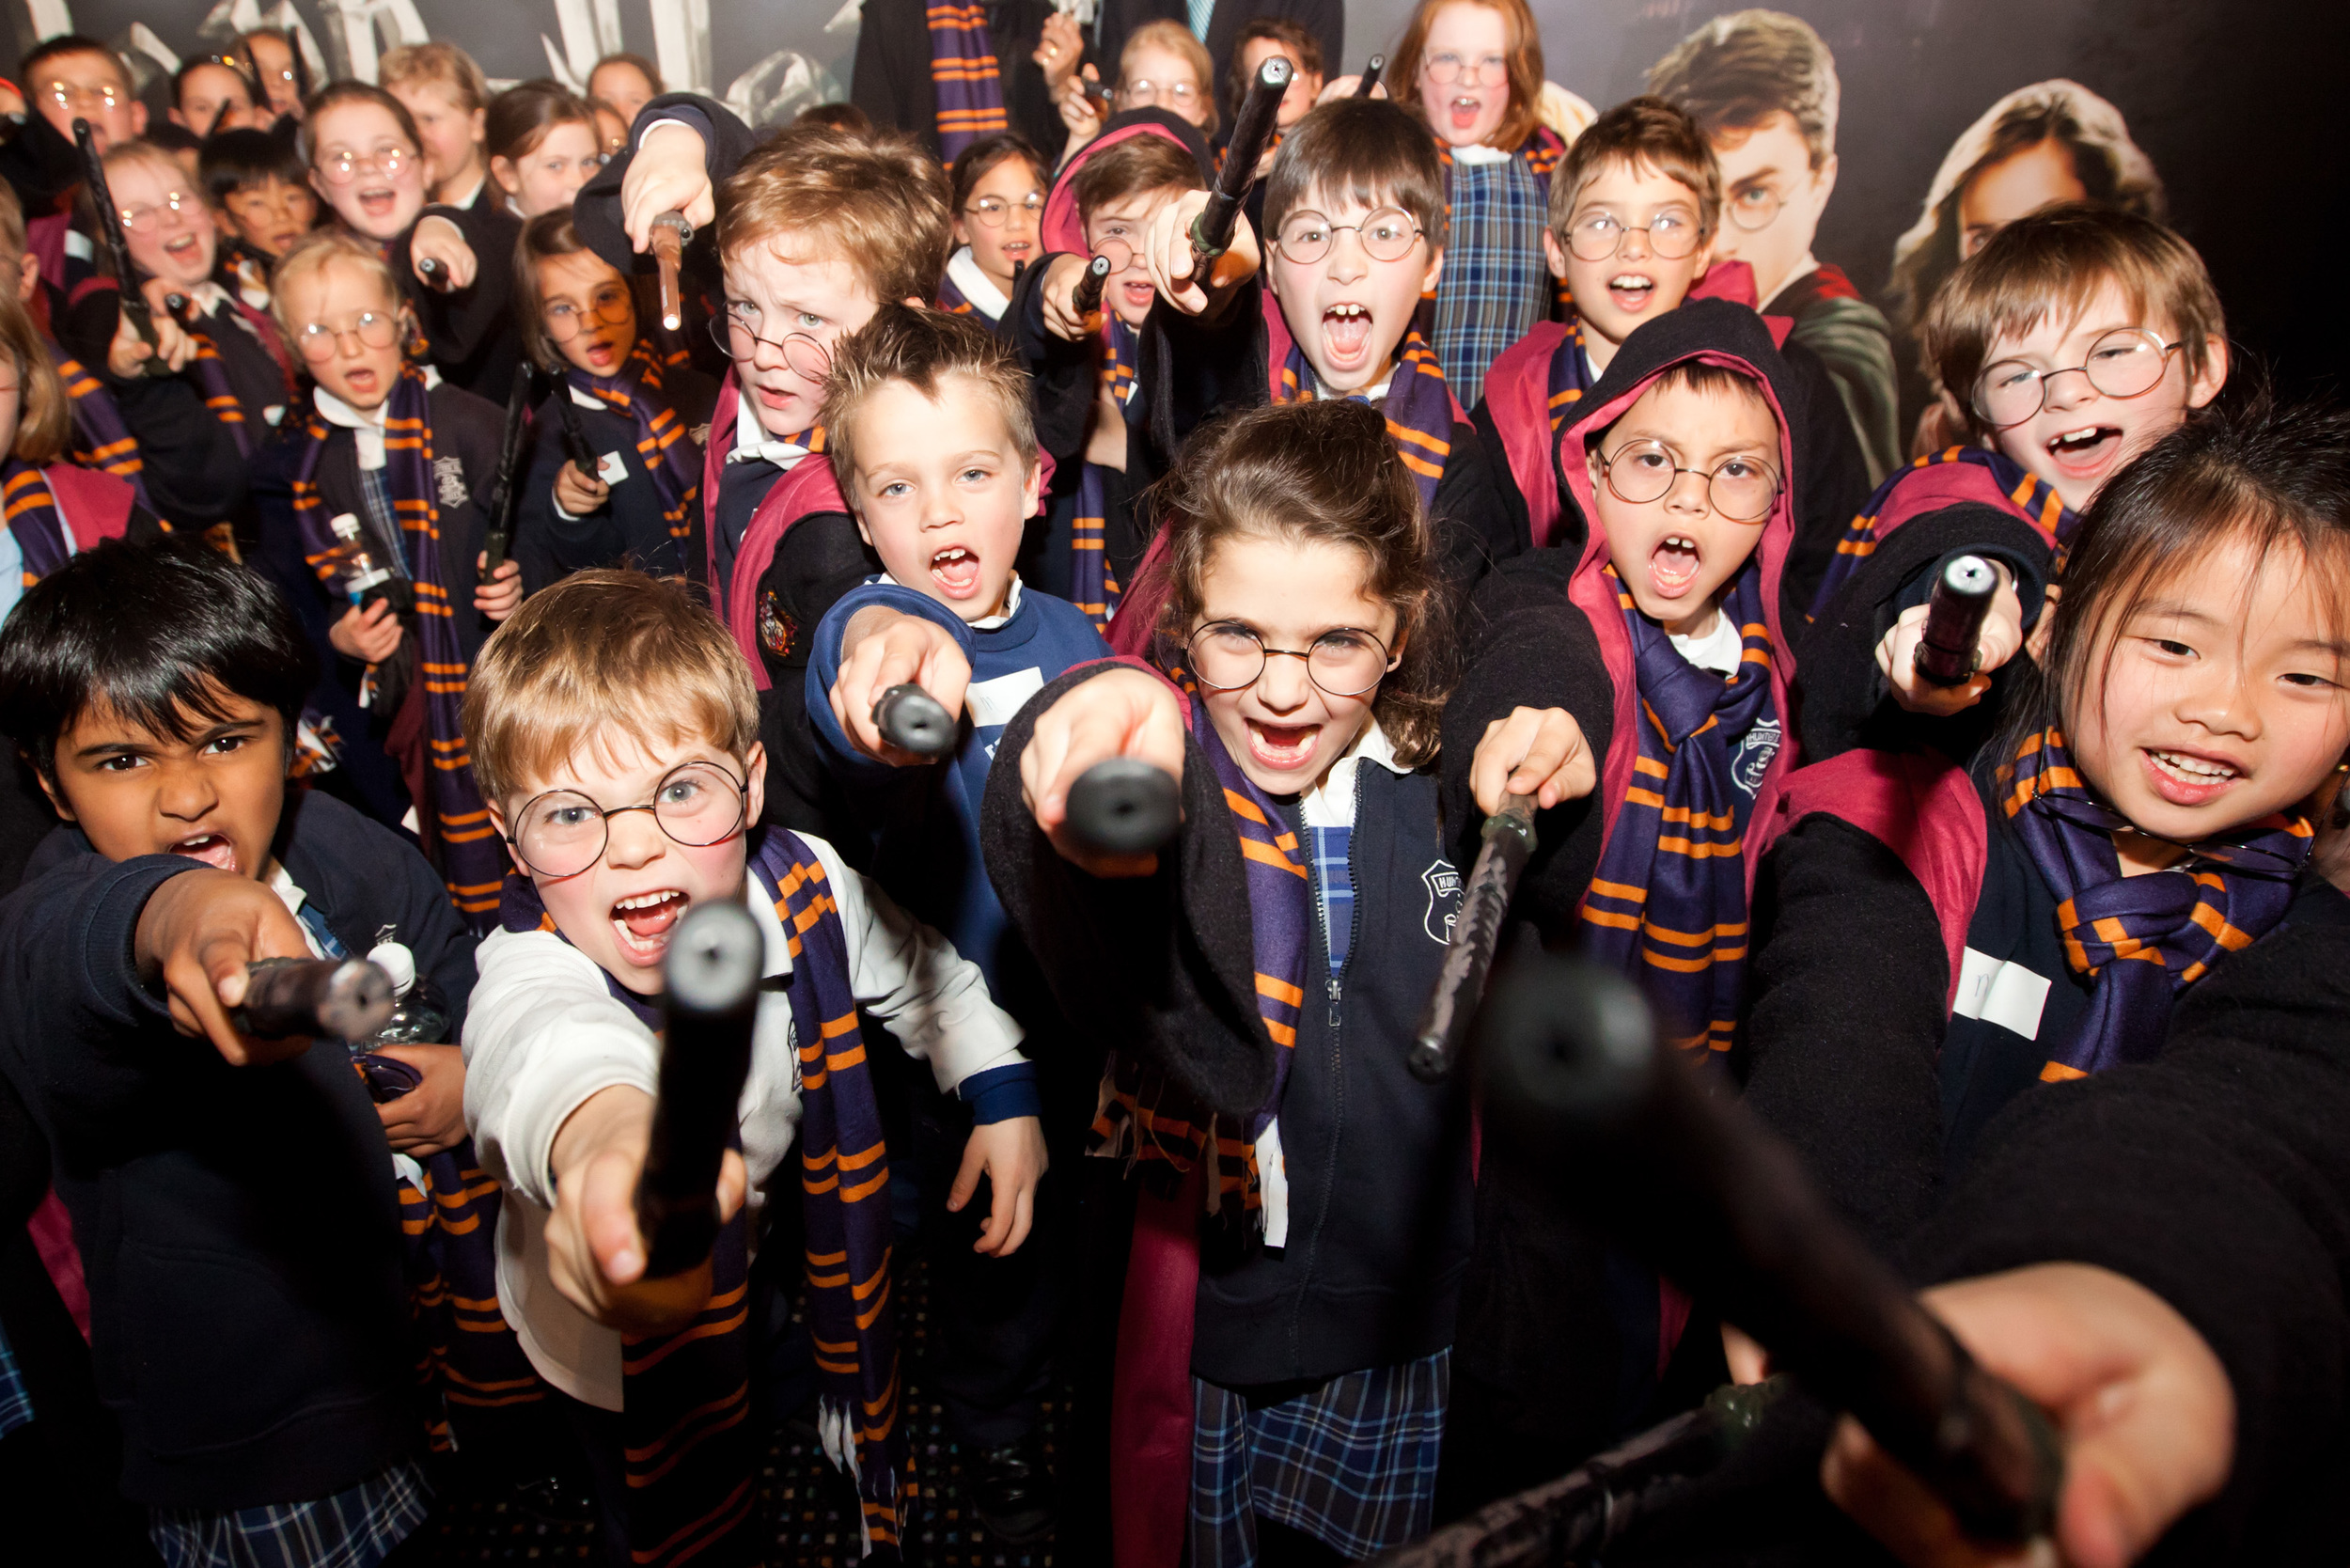 Harry Potter Exhibition preview event at Powerhouse Museum